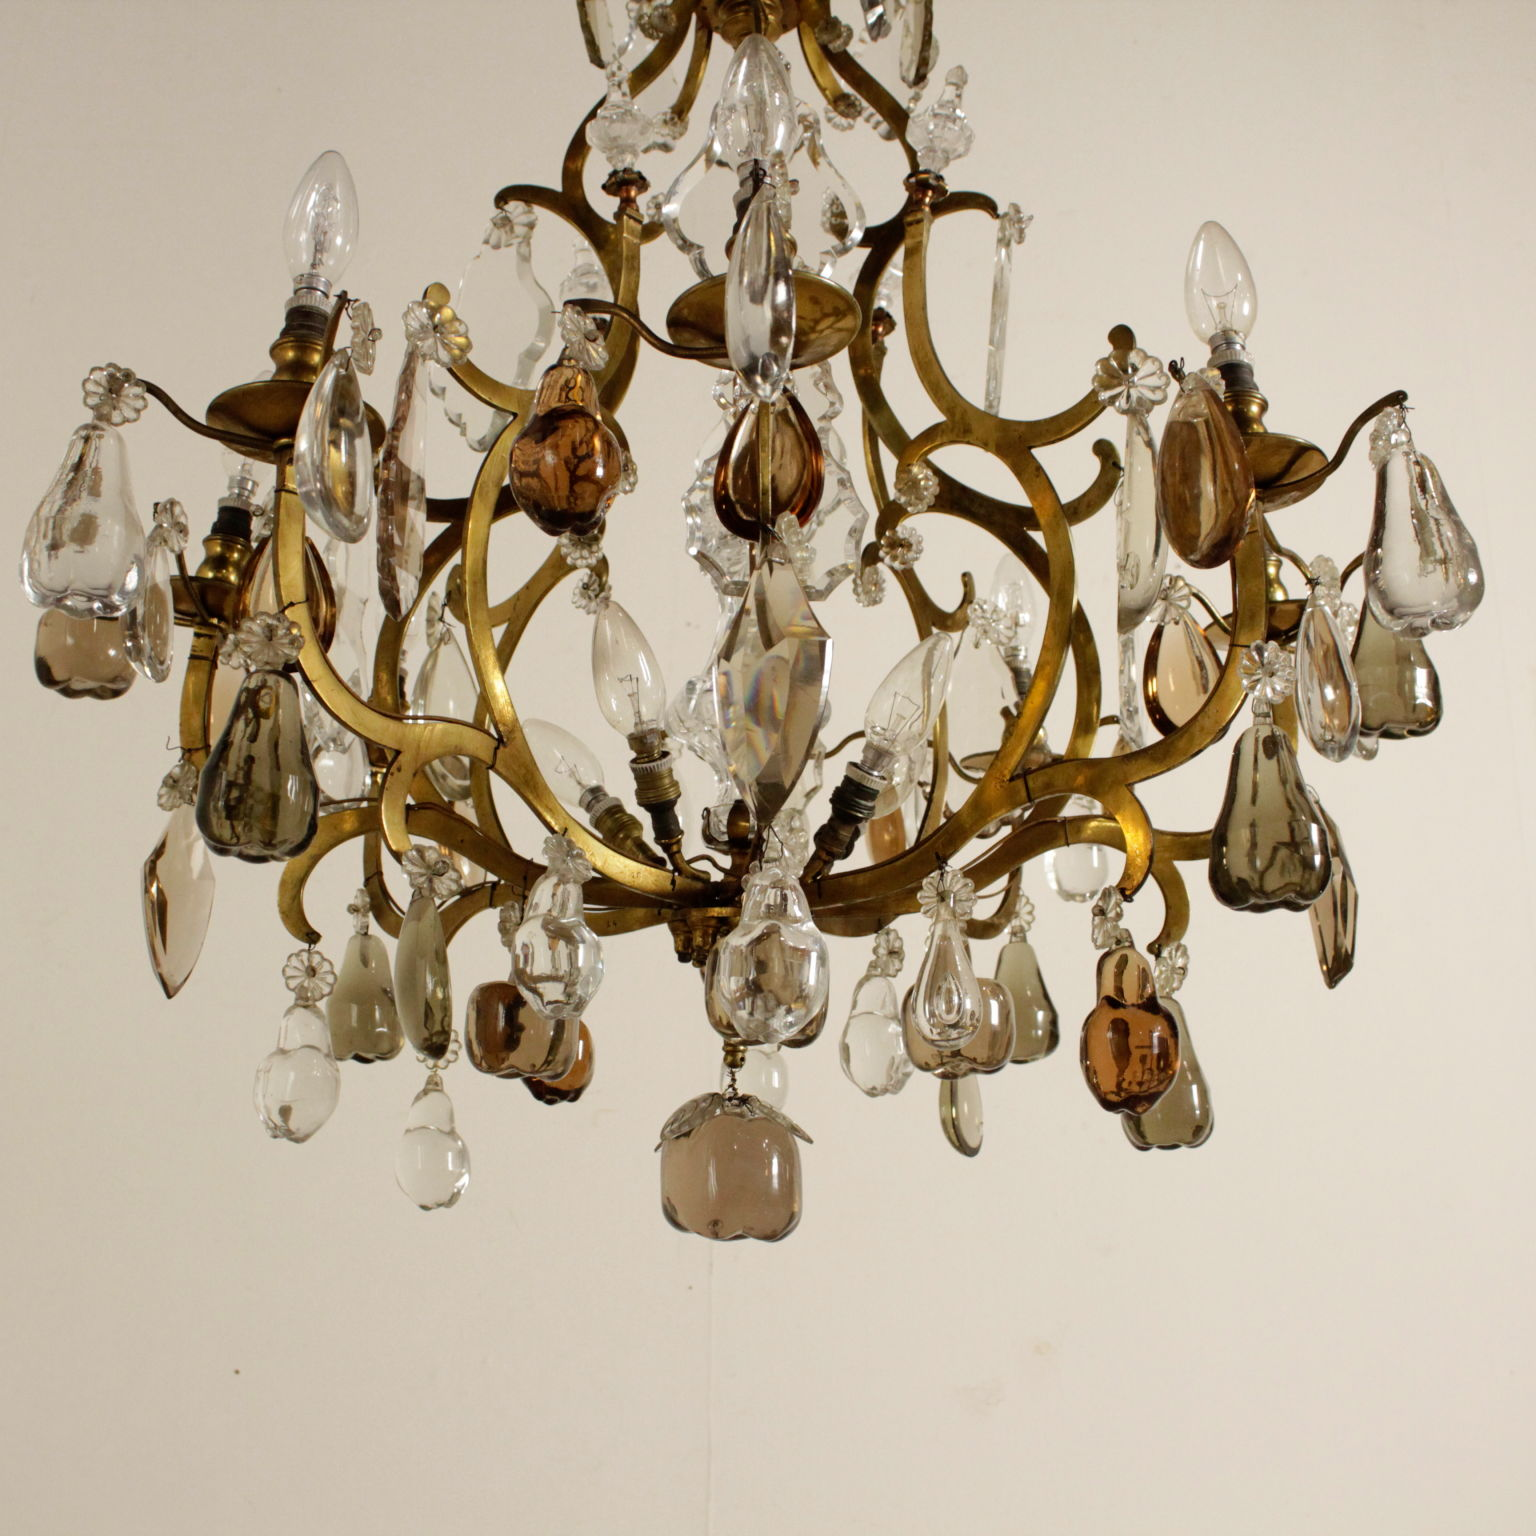 Ceiling lamp with glass fruit chandeliers and lamps antiques chandelier with fruit in the glass aloadofball Images